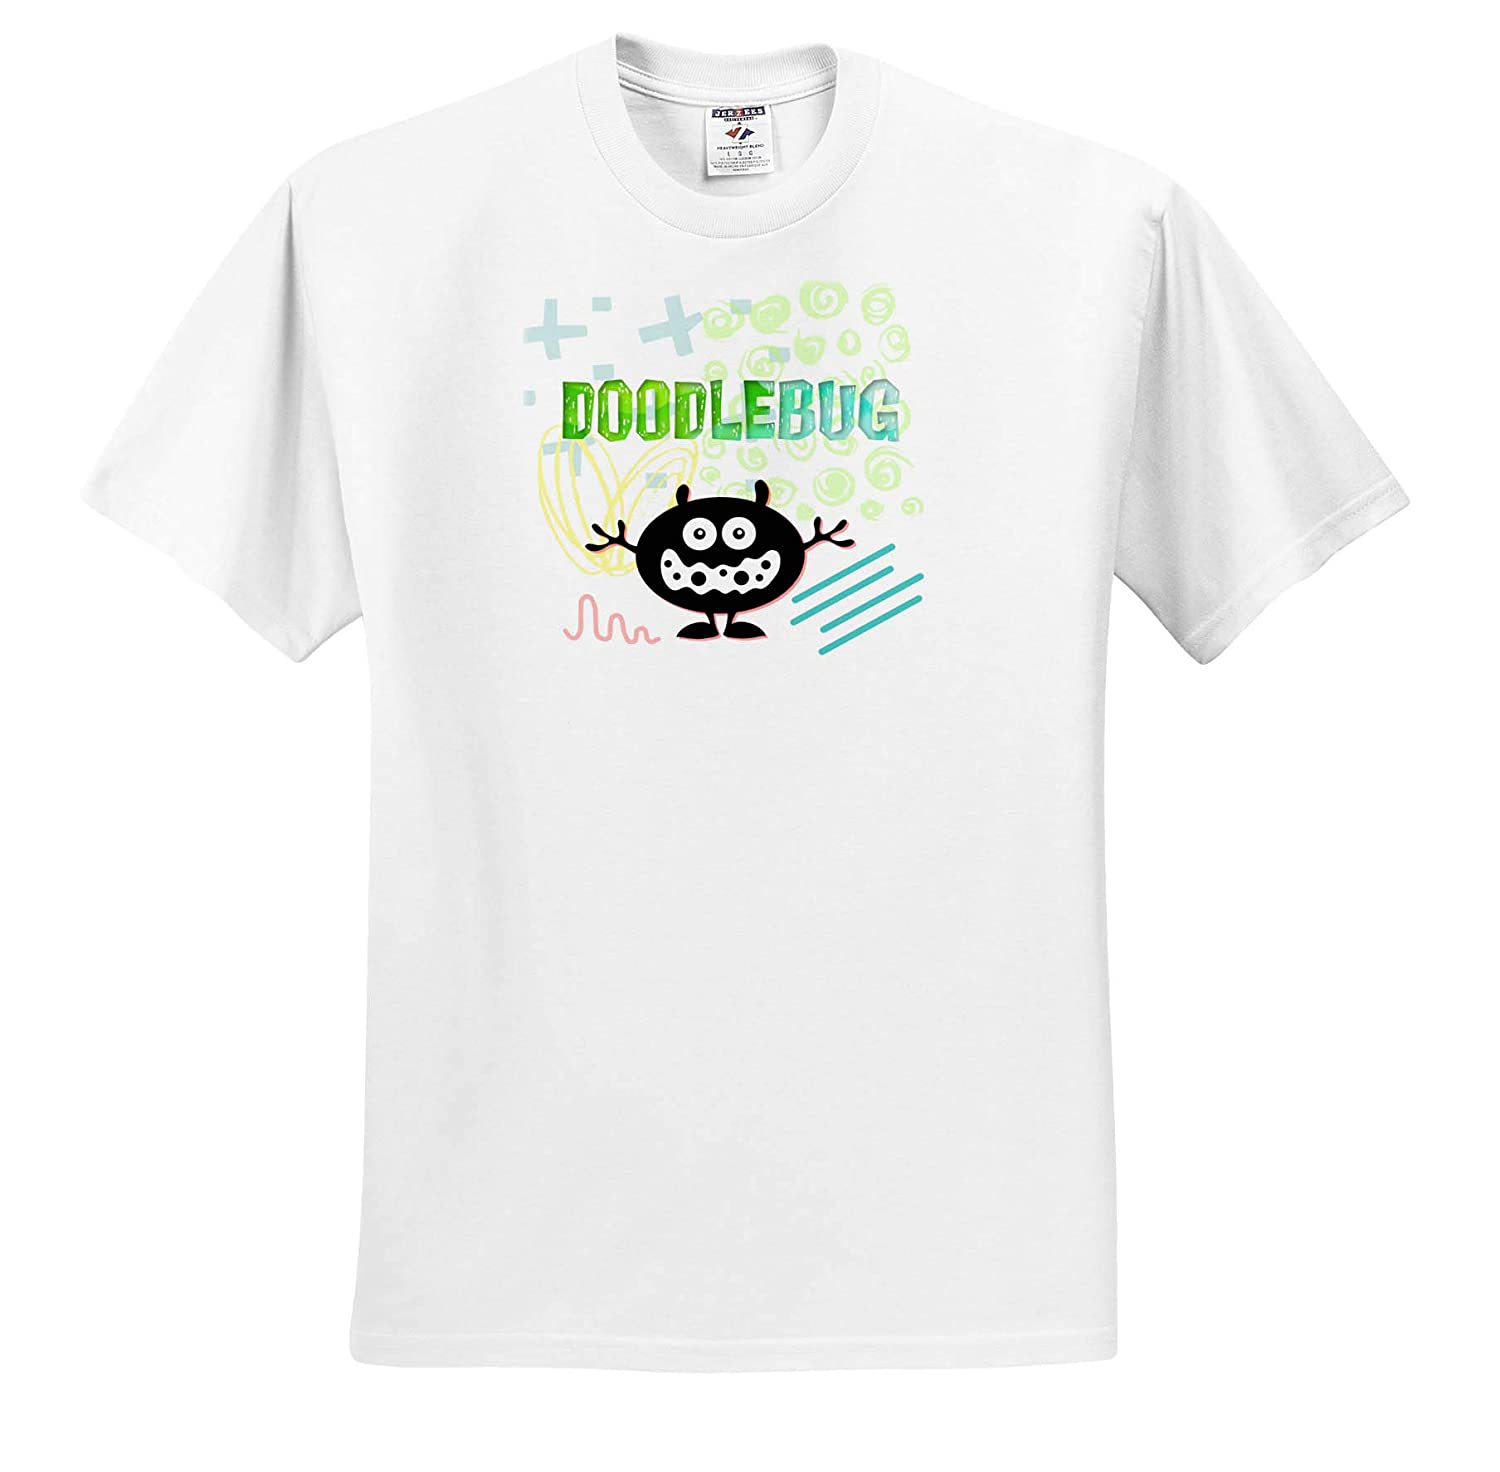 ts/_318623 Adult T-Shirt XL 3dRose Carrie Quote Image Image Quote of Doodlebug